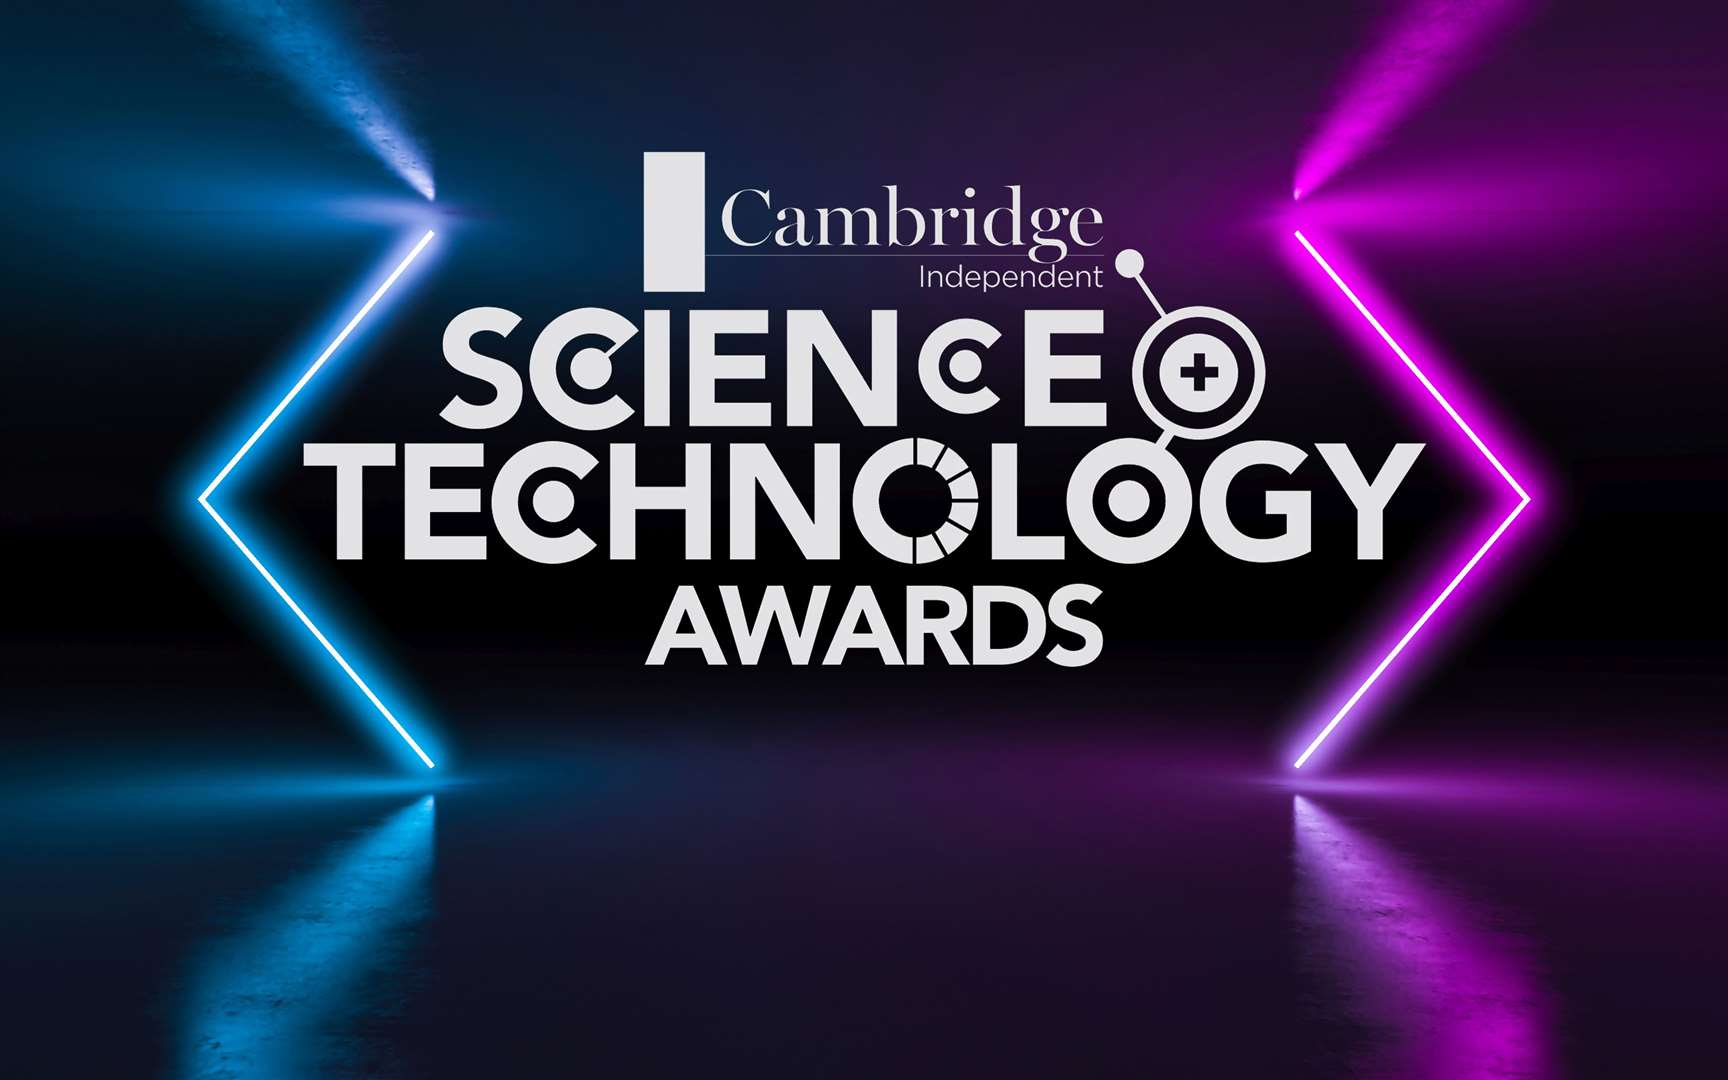 The Cambridge Independent Science and Technology Awards are now in their fourth year.